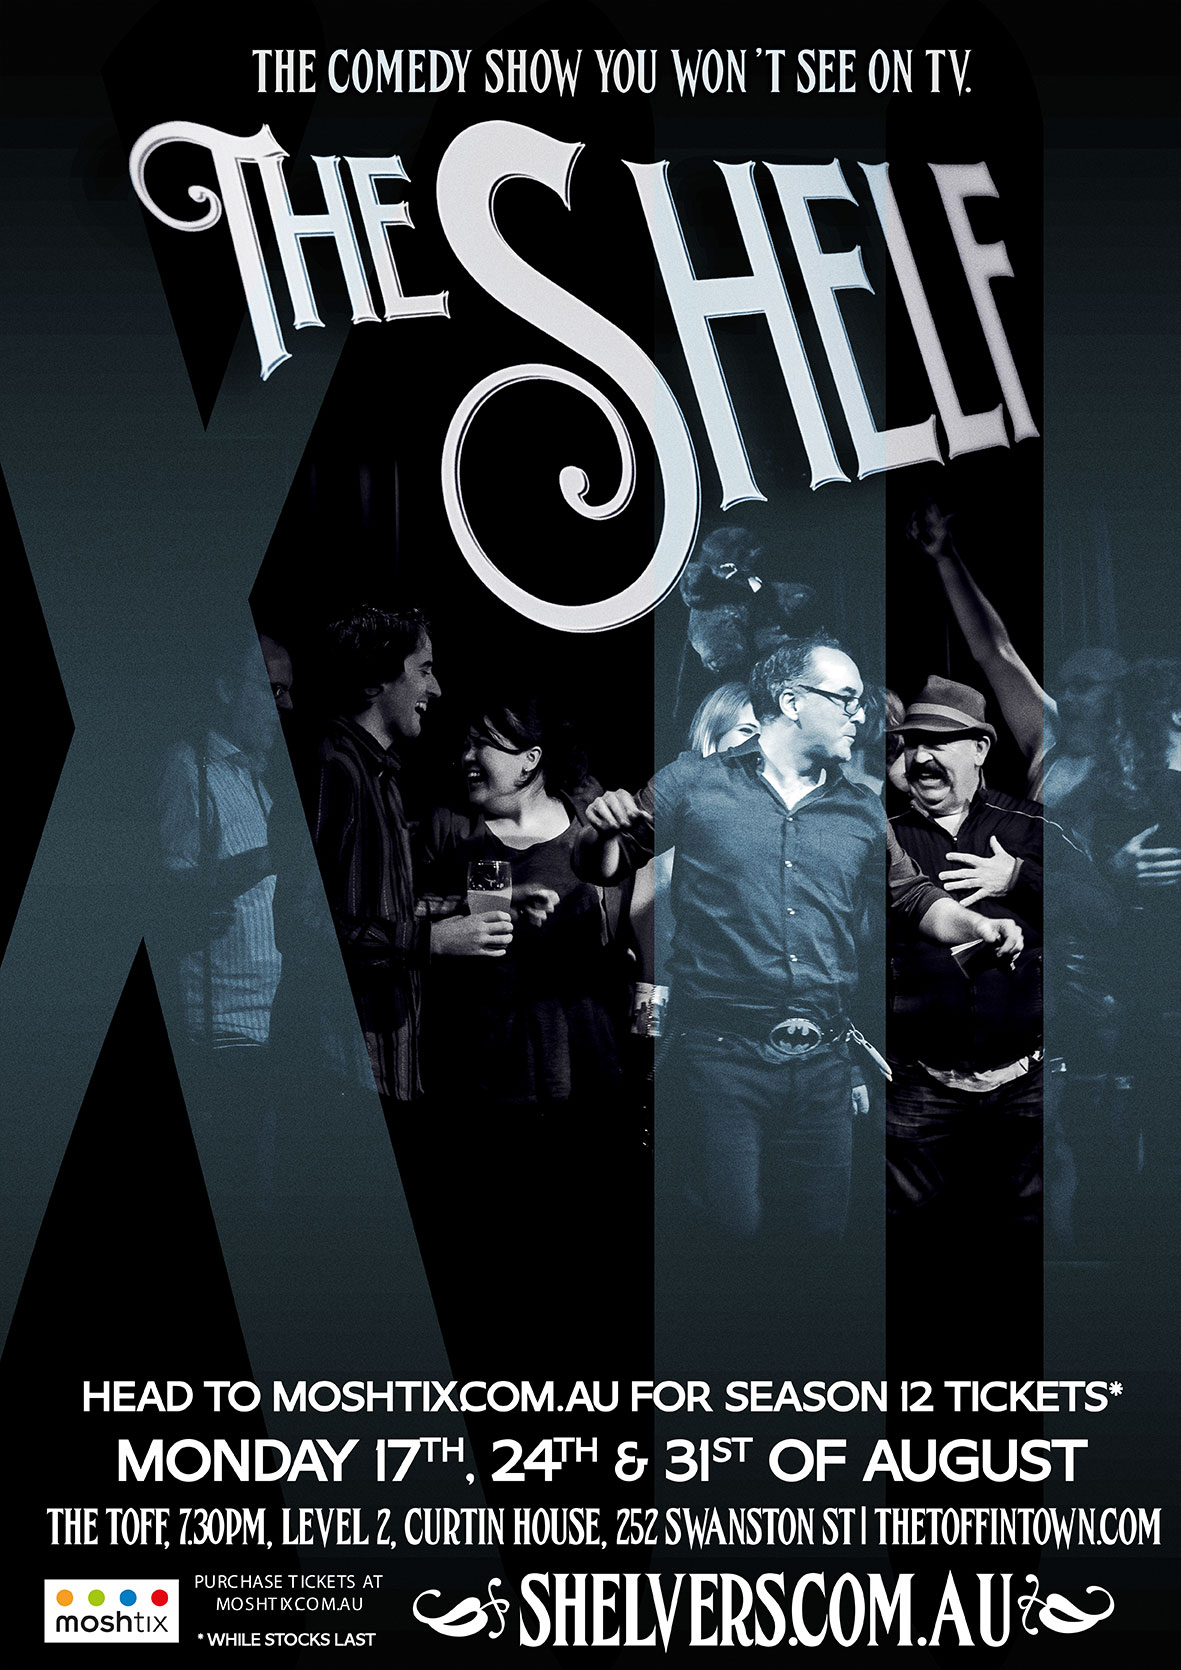 The Shelf, Season 12 poster.